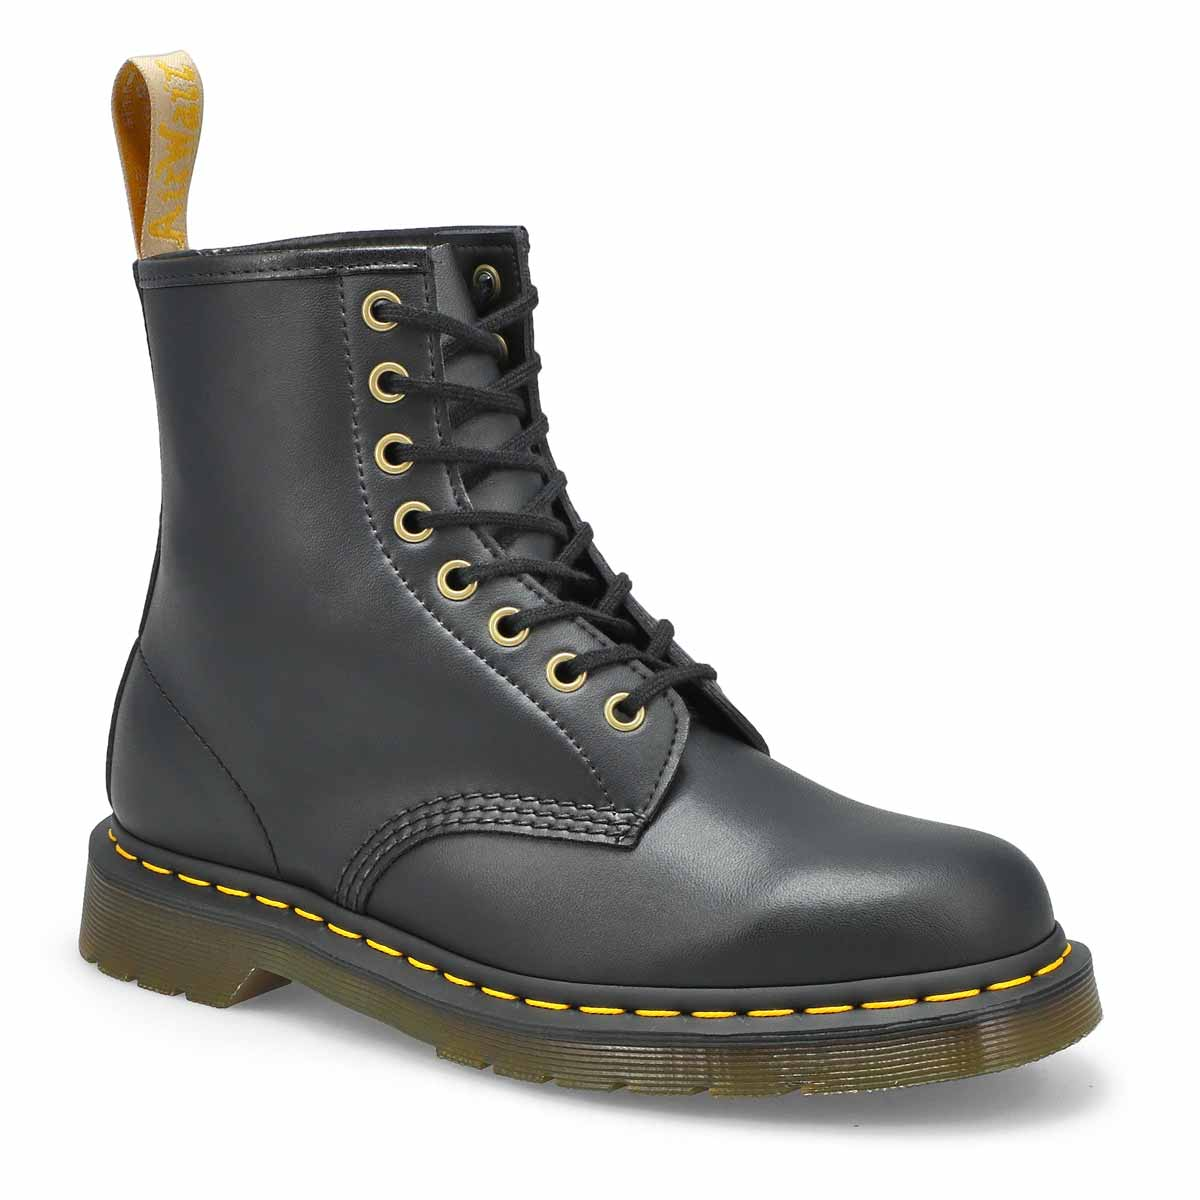 Lds Vegan 1460 8-Eye black smooth boot